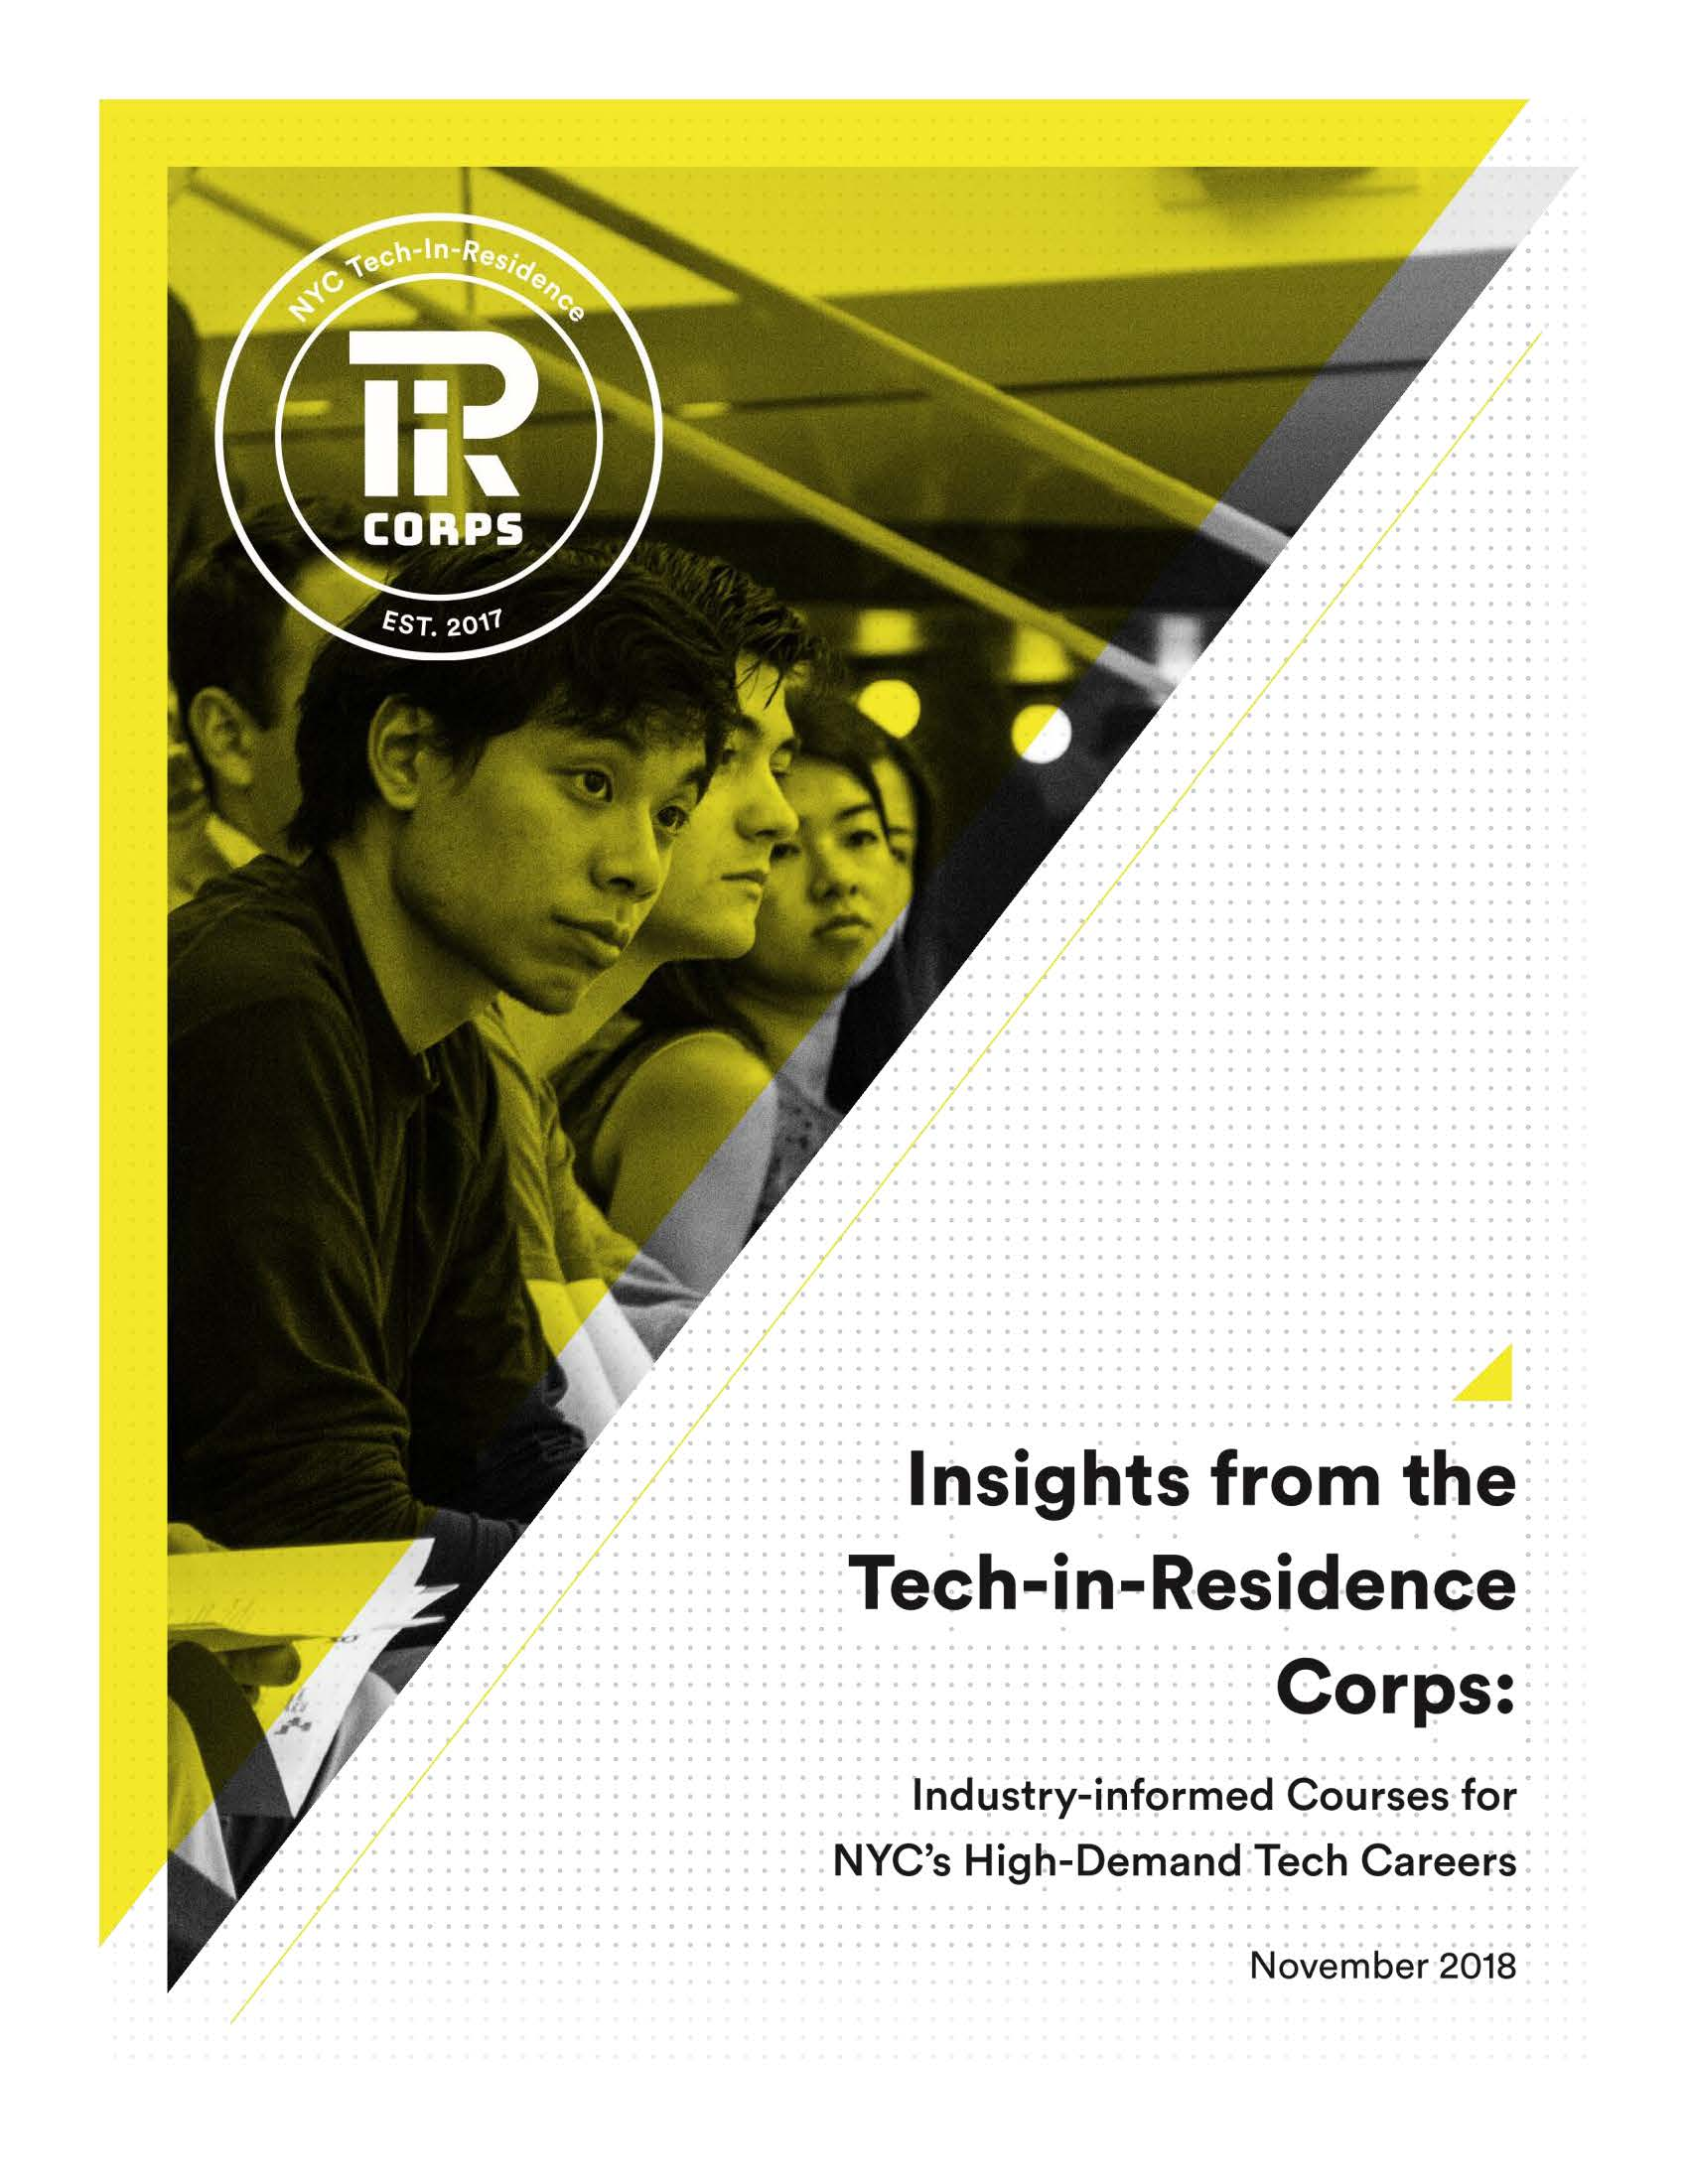 - Learn more about the materials and coursework that emerged from the Tech-in-Residence Corps.